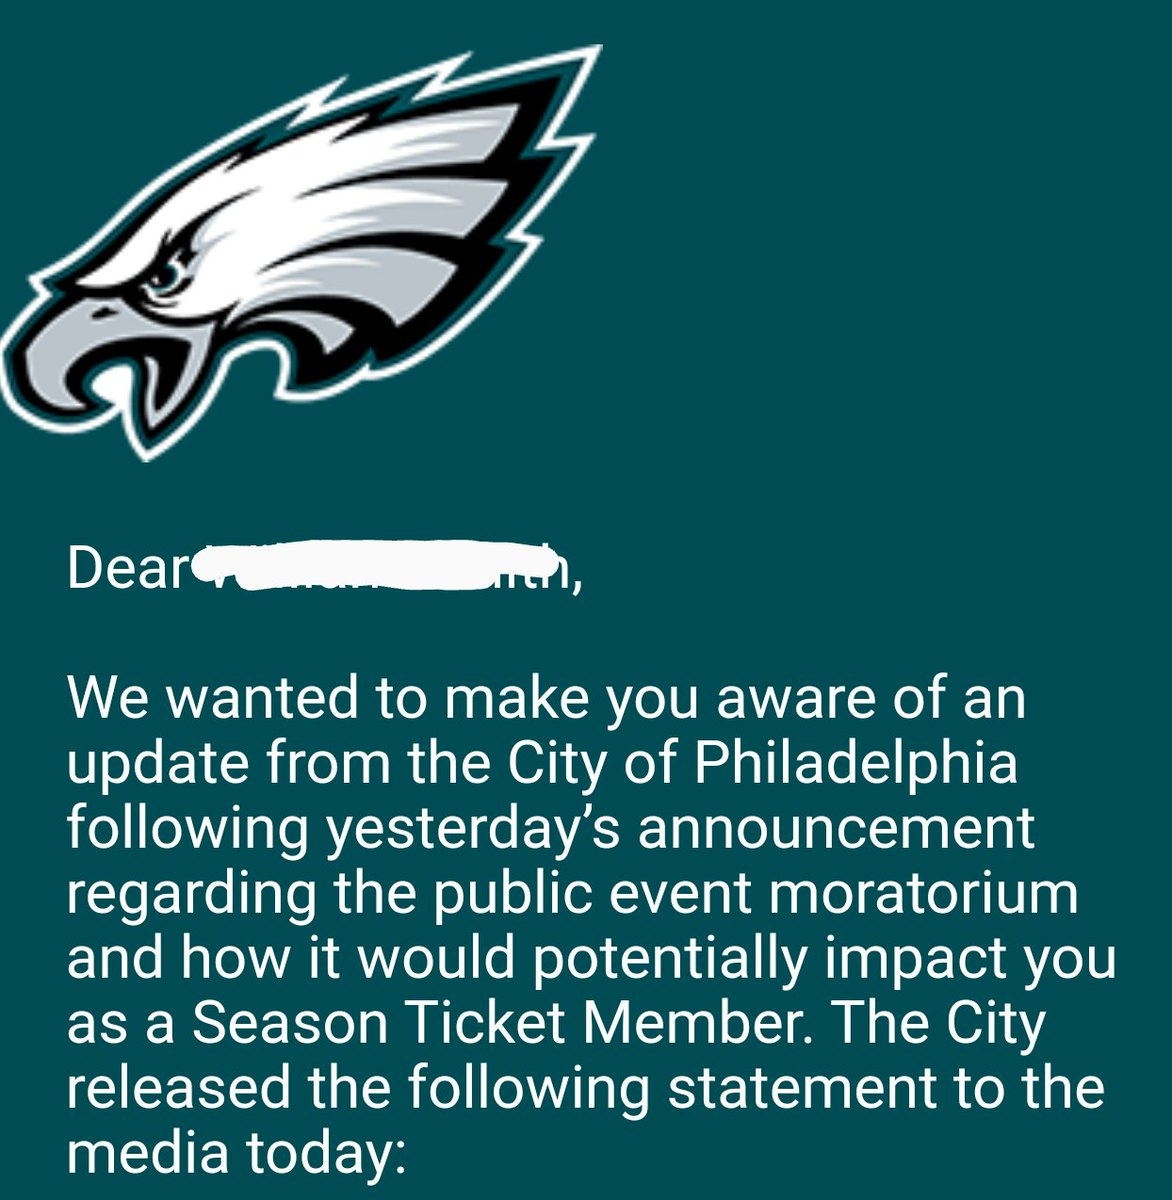 There's still hope for Eagles fans to be able to attend games this season!  #FlyEaglesFly <br>http://pic.twitter.com/iAR6oMmtAe